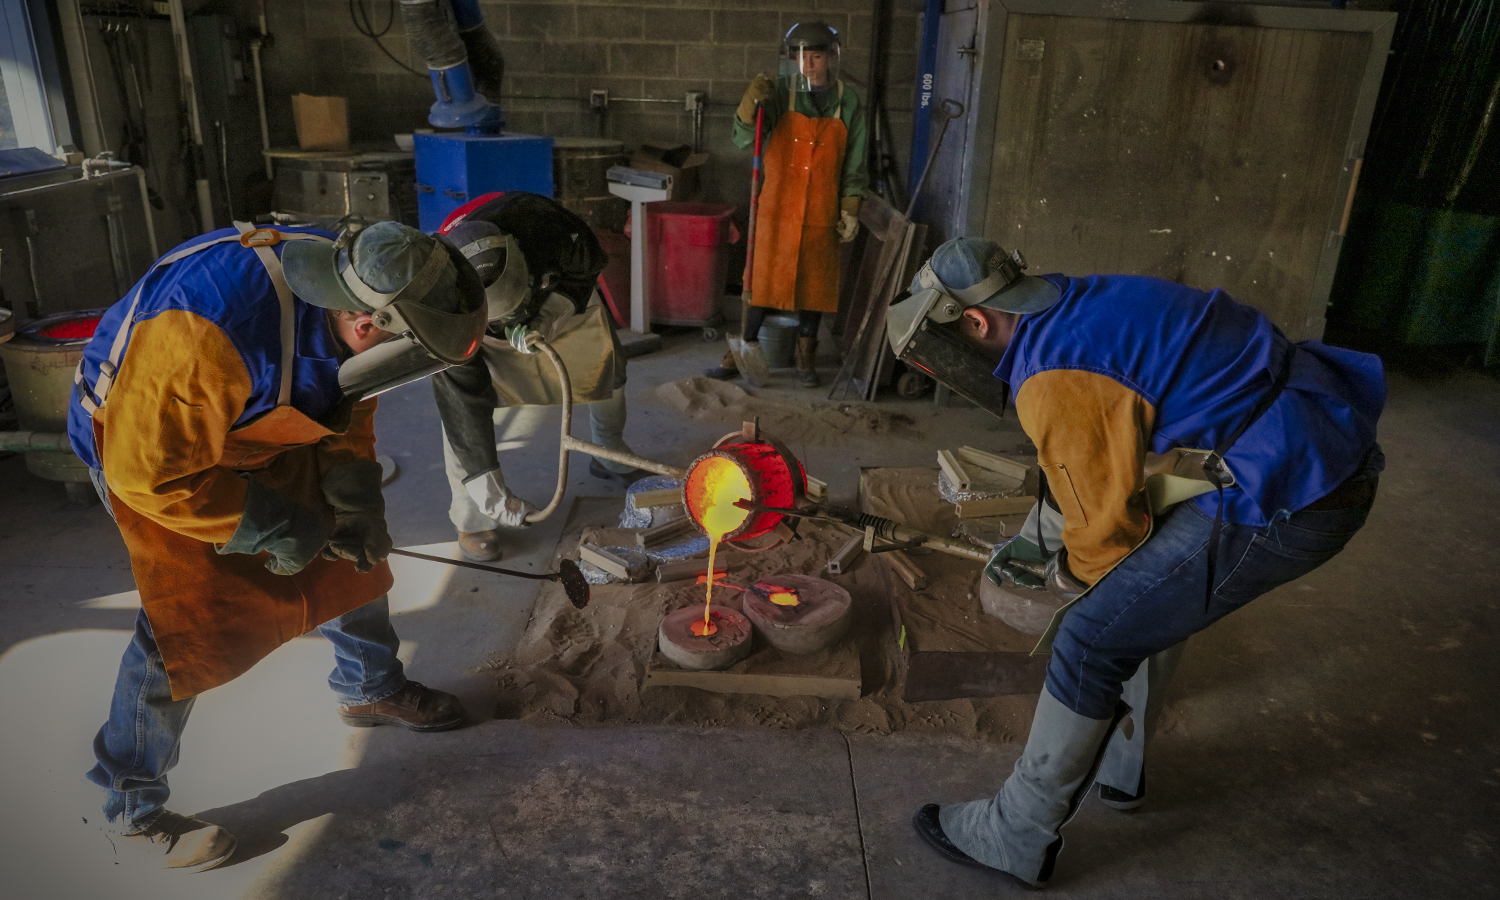 Professor of Art and Architecture A.E. Ted Aub assists Bramm Watkin â20 and Zachary Birnbaum '16 as they pour bronze into a form as part of their âAdvanced Sculpture Workshopâ class in the Katherine D. Elliott '66 Studio Arts Center.